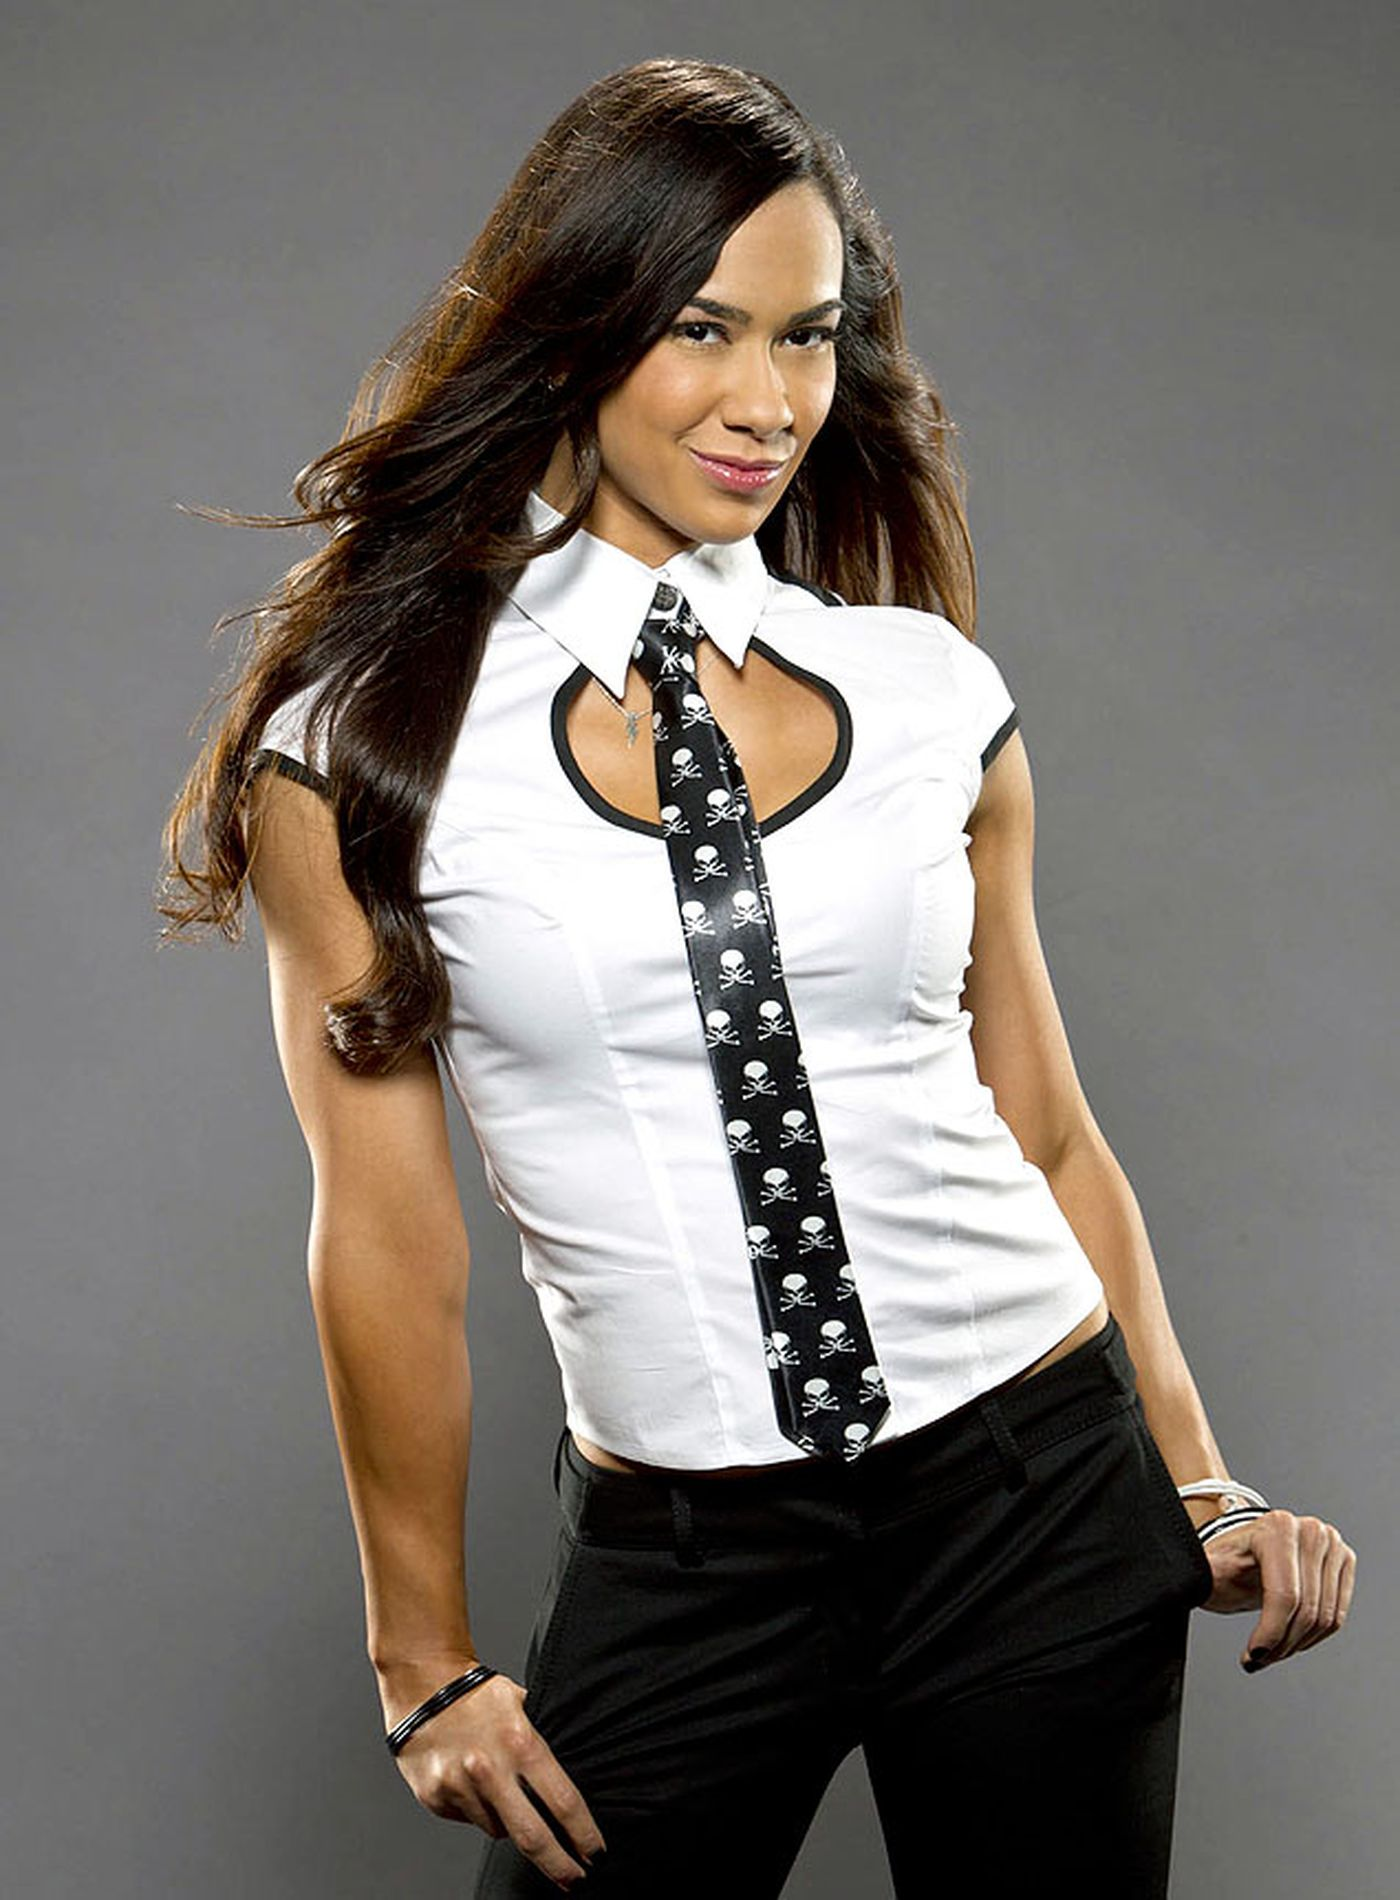 AJ Lee hot pics